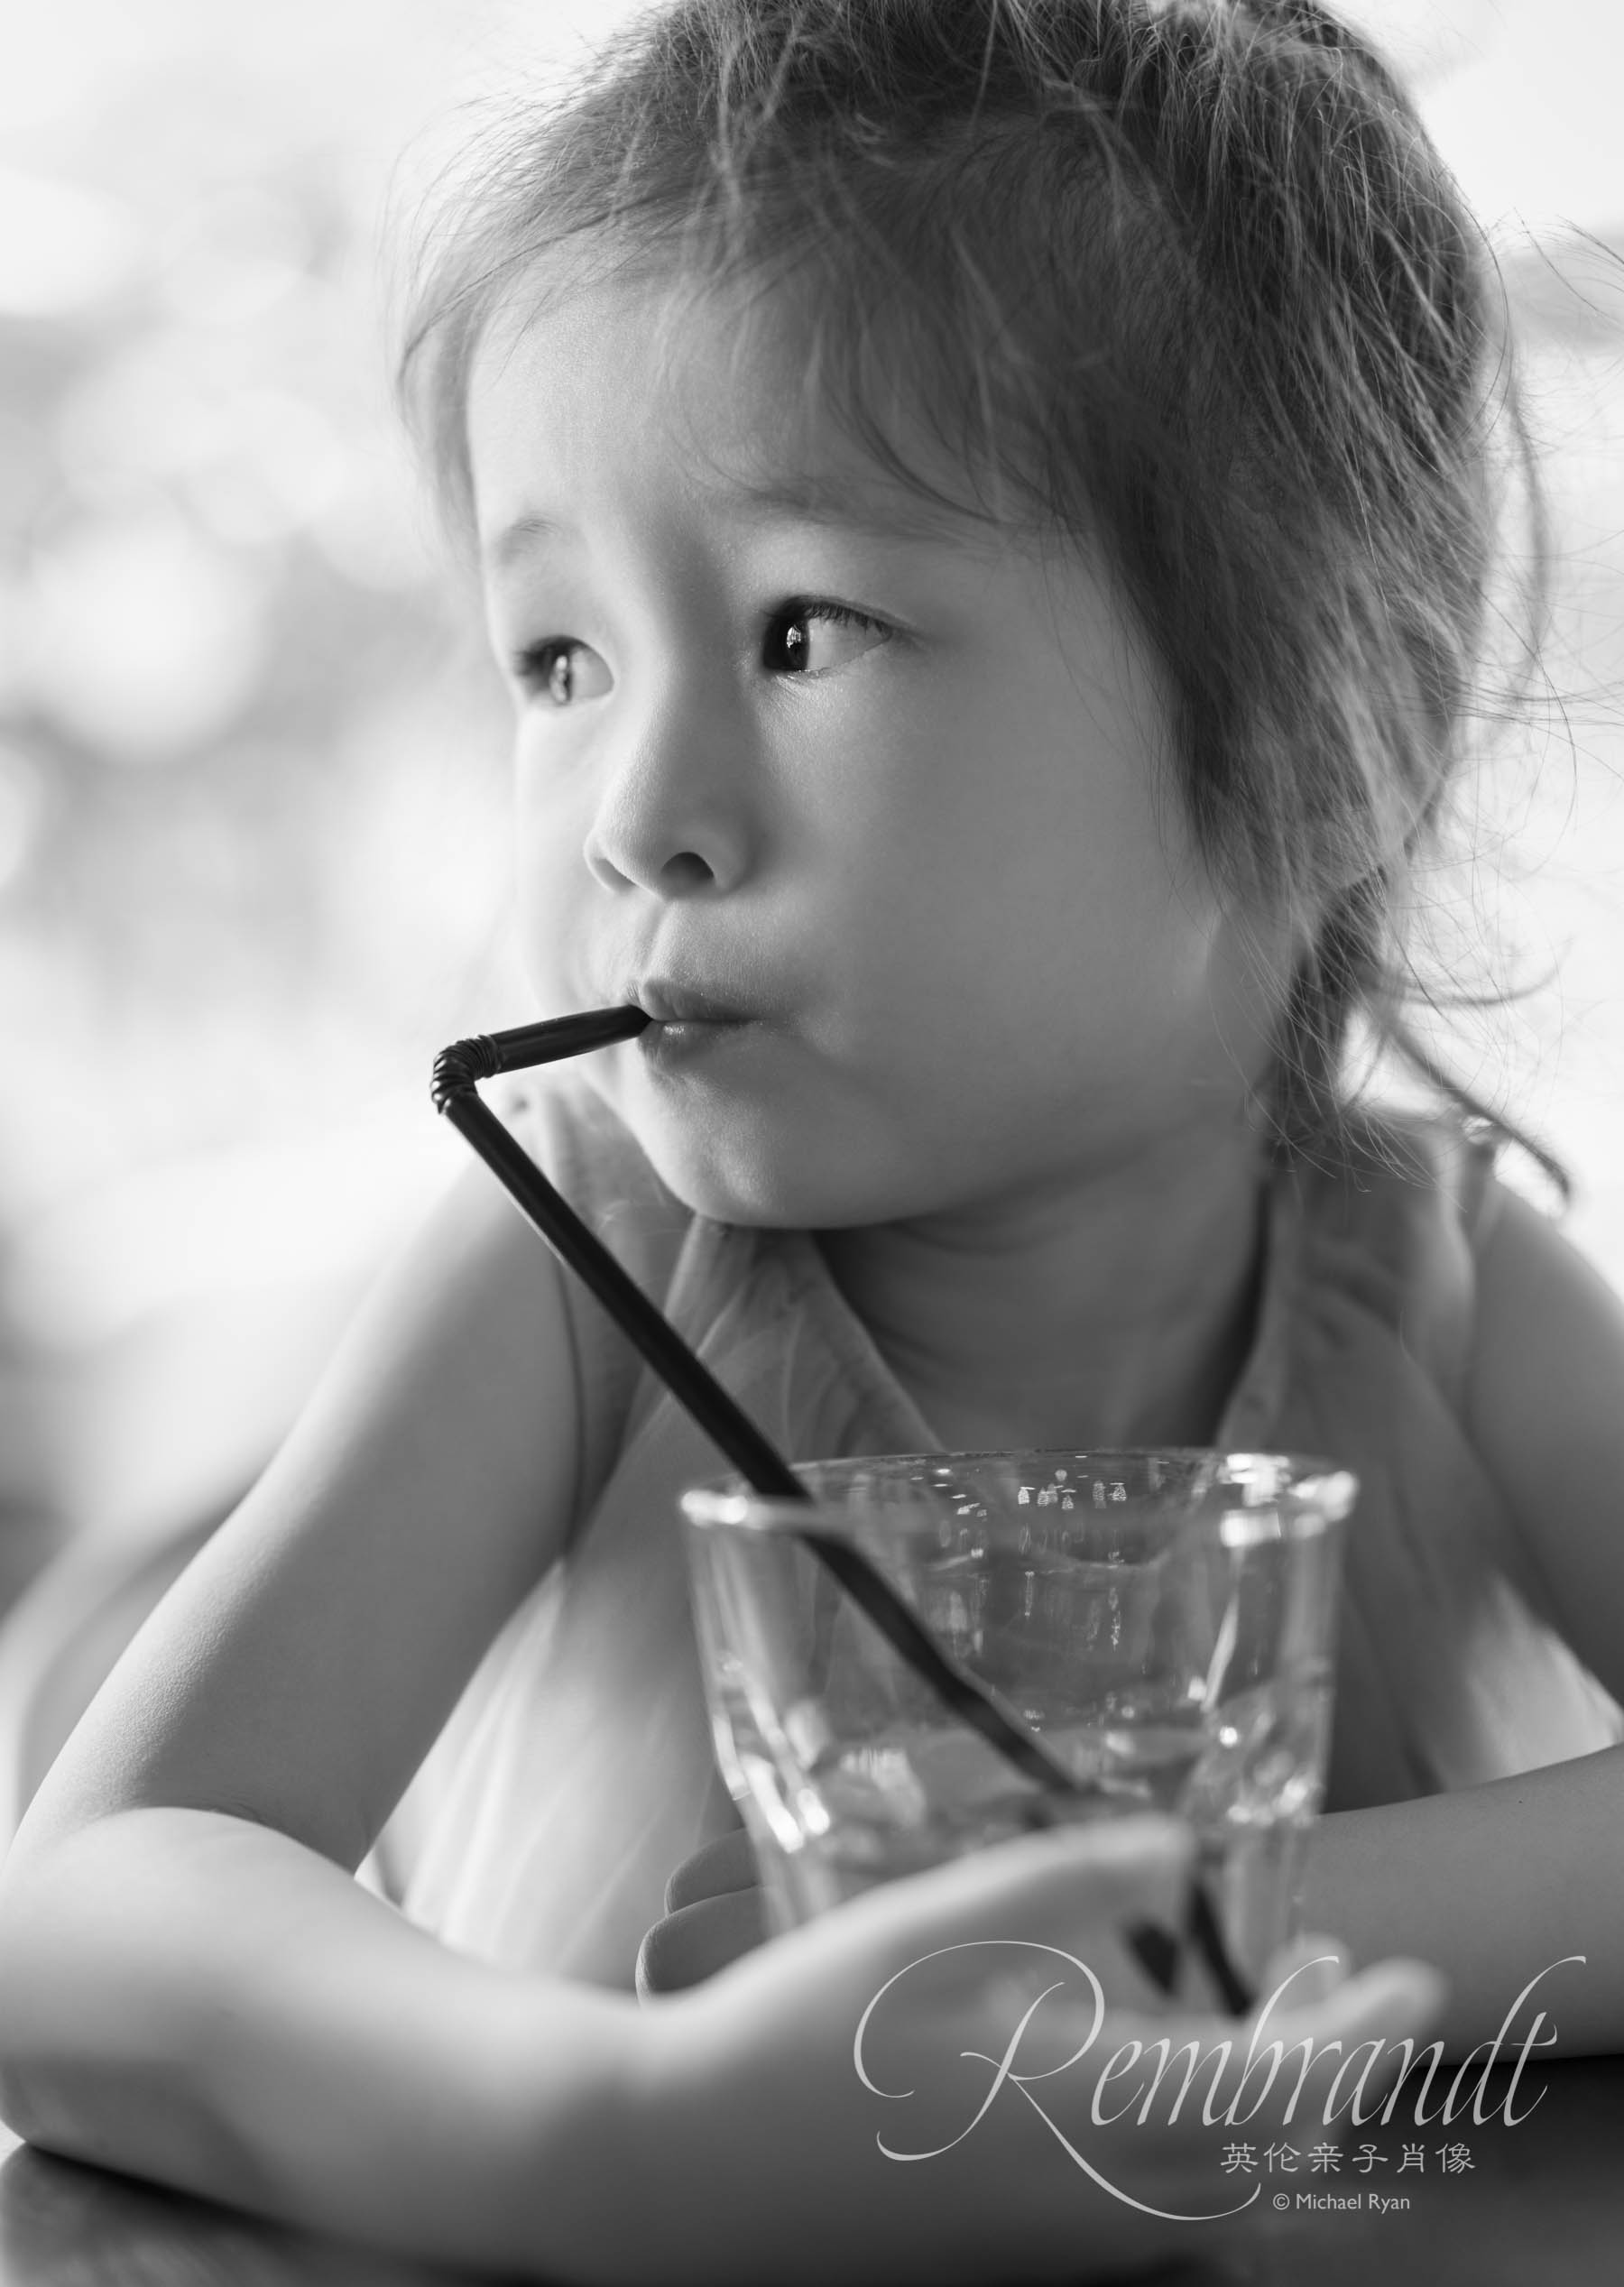 This could have been shot almost anywhere (but probably a Wagas judging by the glass) at any time and it definitely doesn't count as one of the great moments of her life. But I love her idleness dreaming of who knows what while enjoying the childish thrill of drinking through a straw.